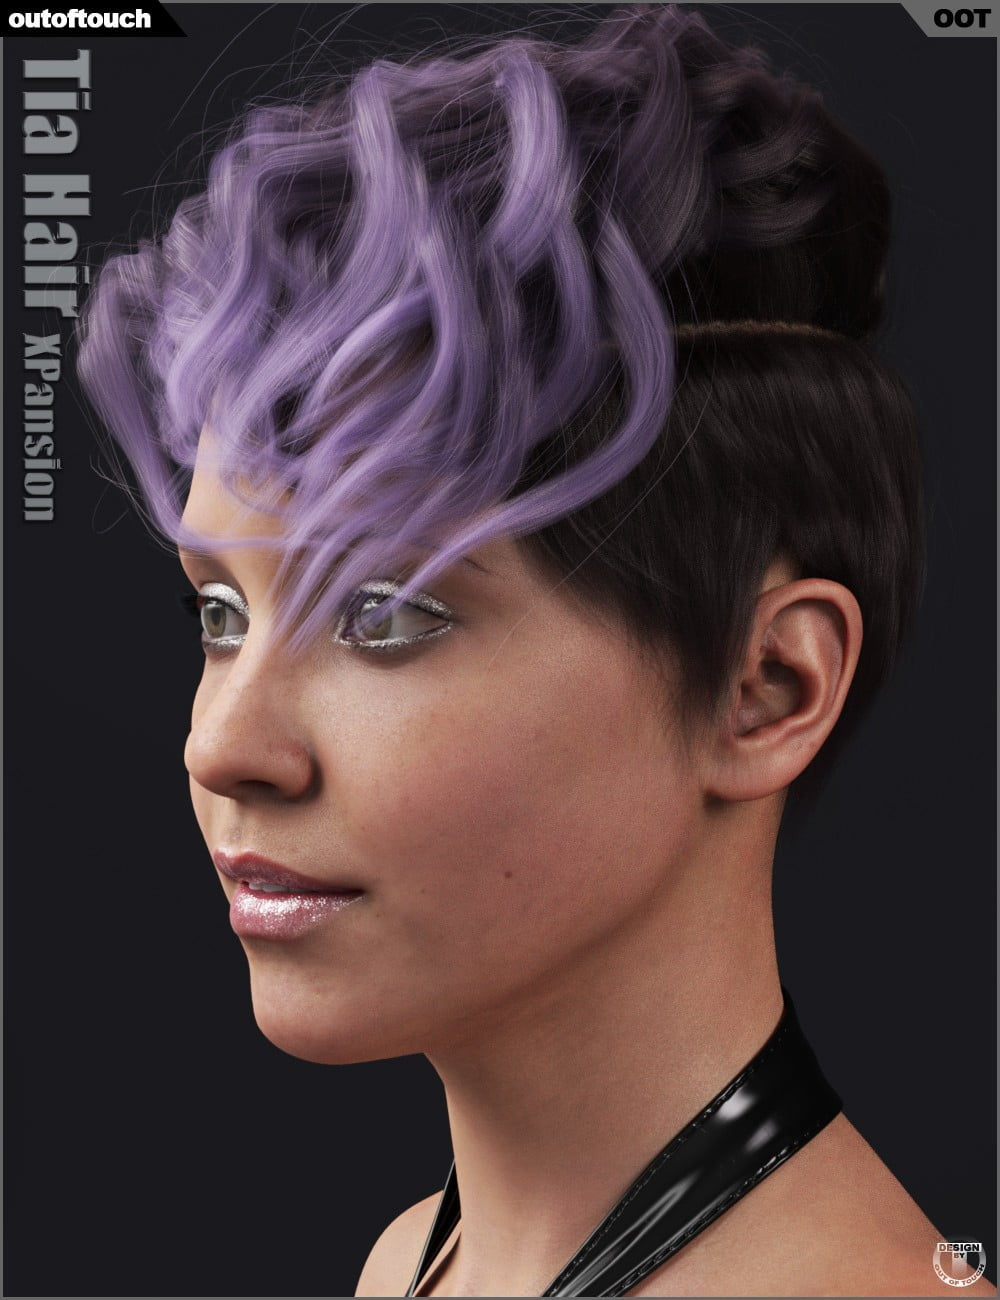 OOT Hairblending 2.0 Texture XPansion for Tia Hair